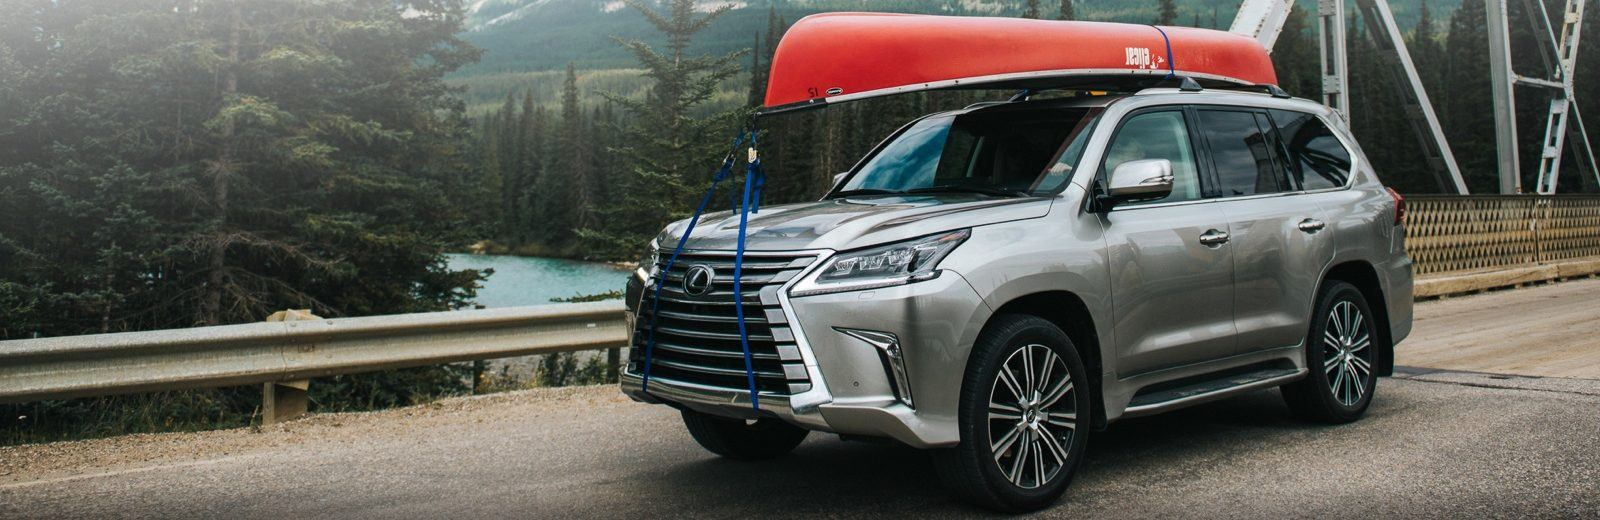 Lexus LX 570 in Atomic Silver